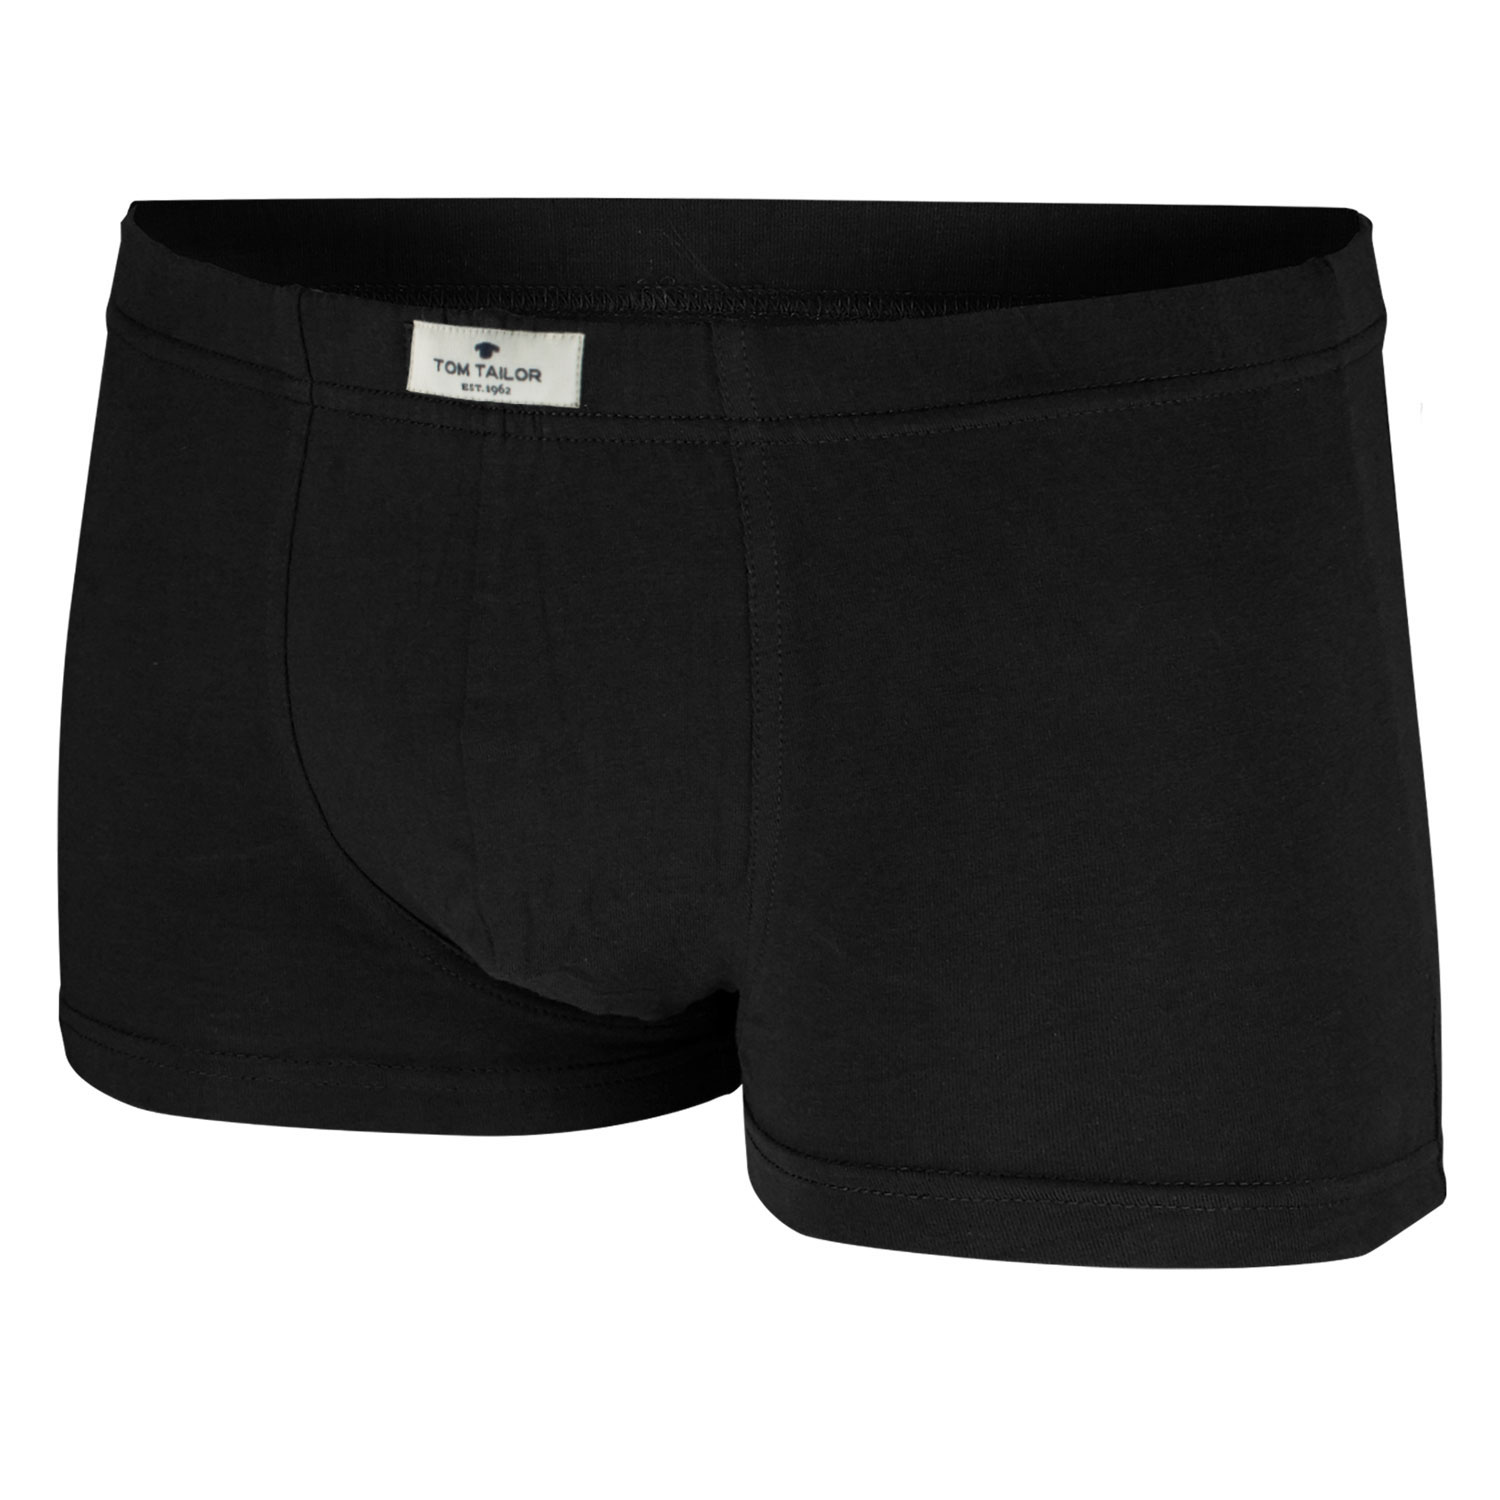 Tom Tailor Boxershorts 3er Pack 8710  – Bild 4